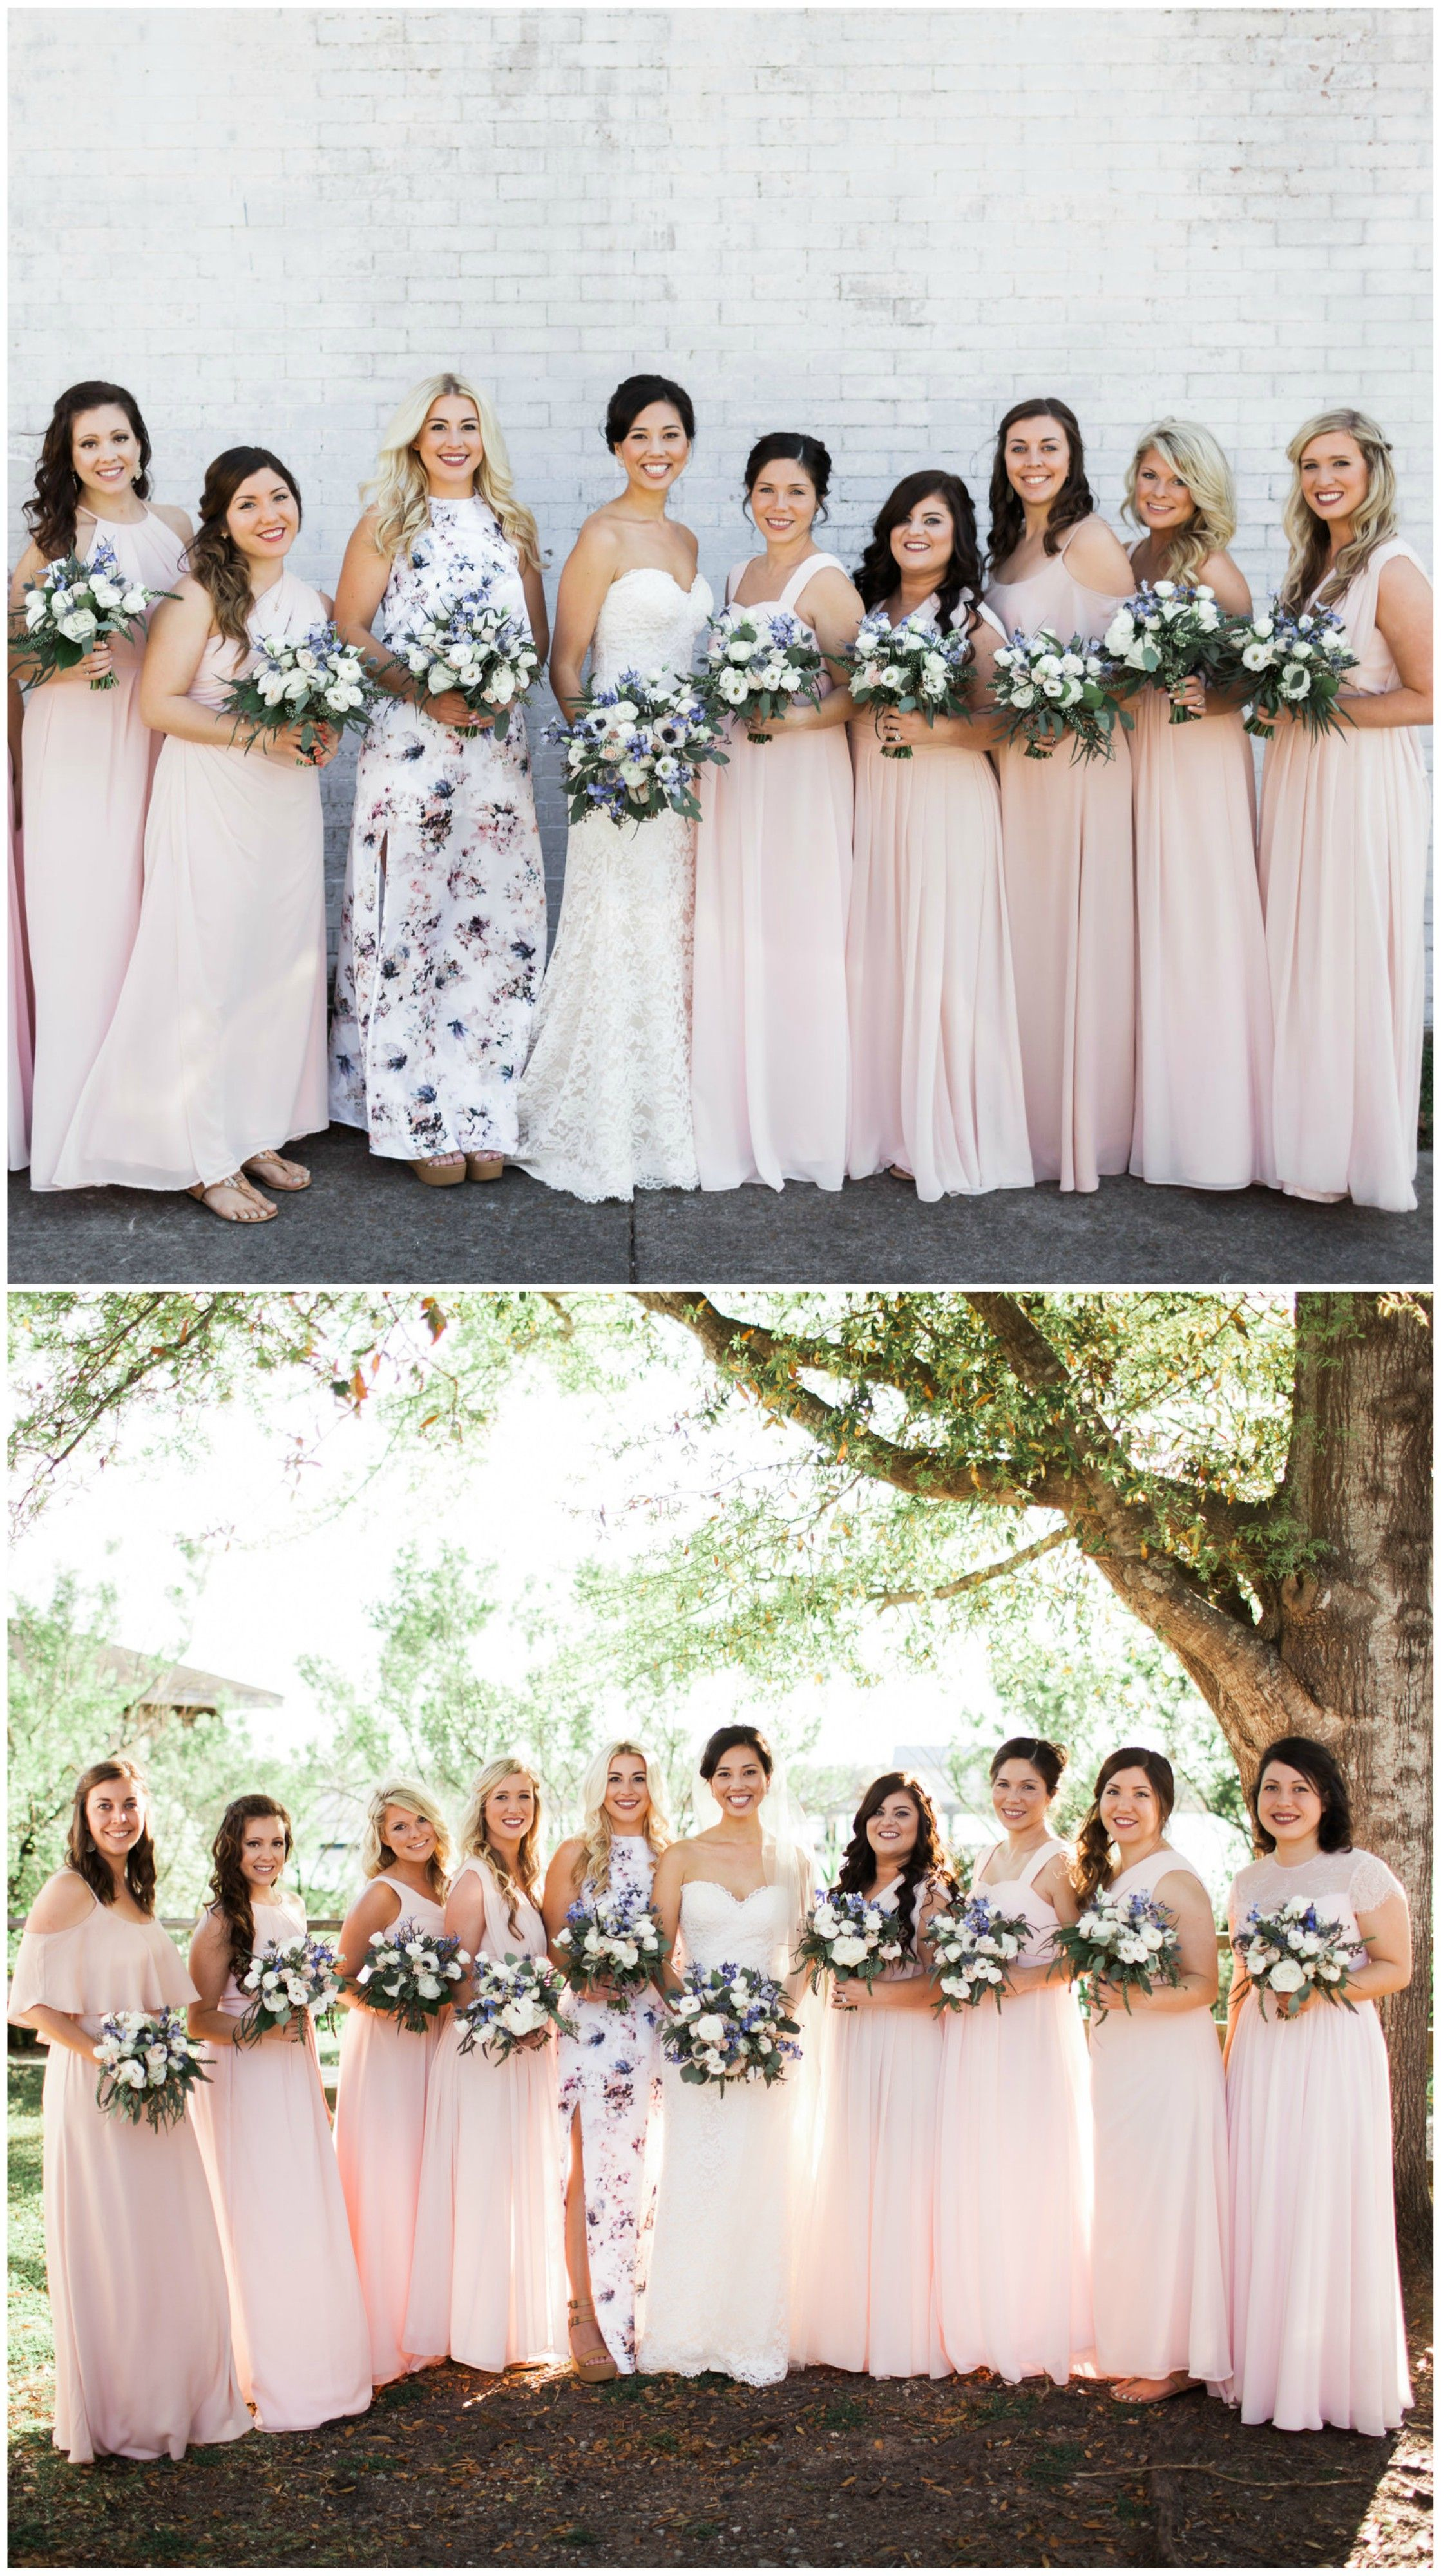 Pastel pink bridesmaid dress  The Smarter Way to Wed  Pinterest  Bridal parties Maids and Weddings